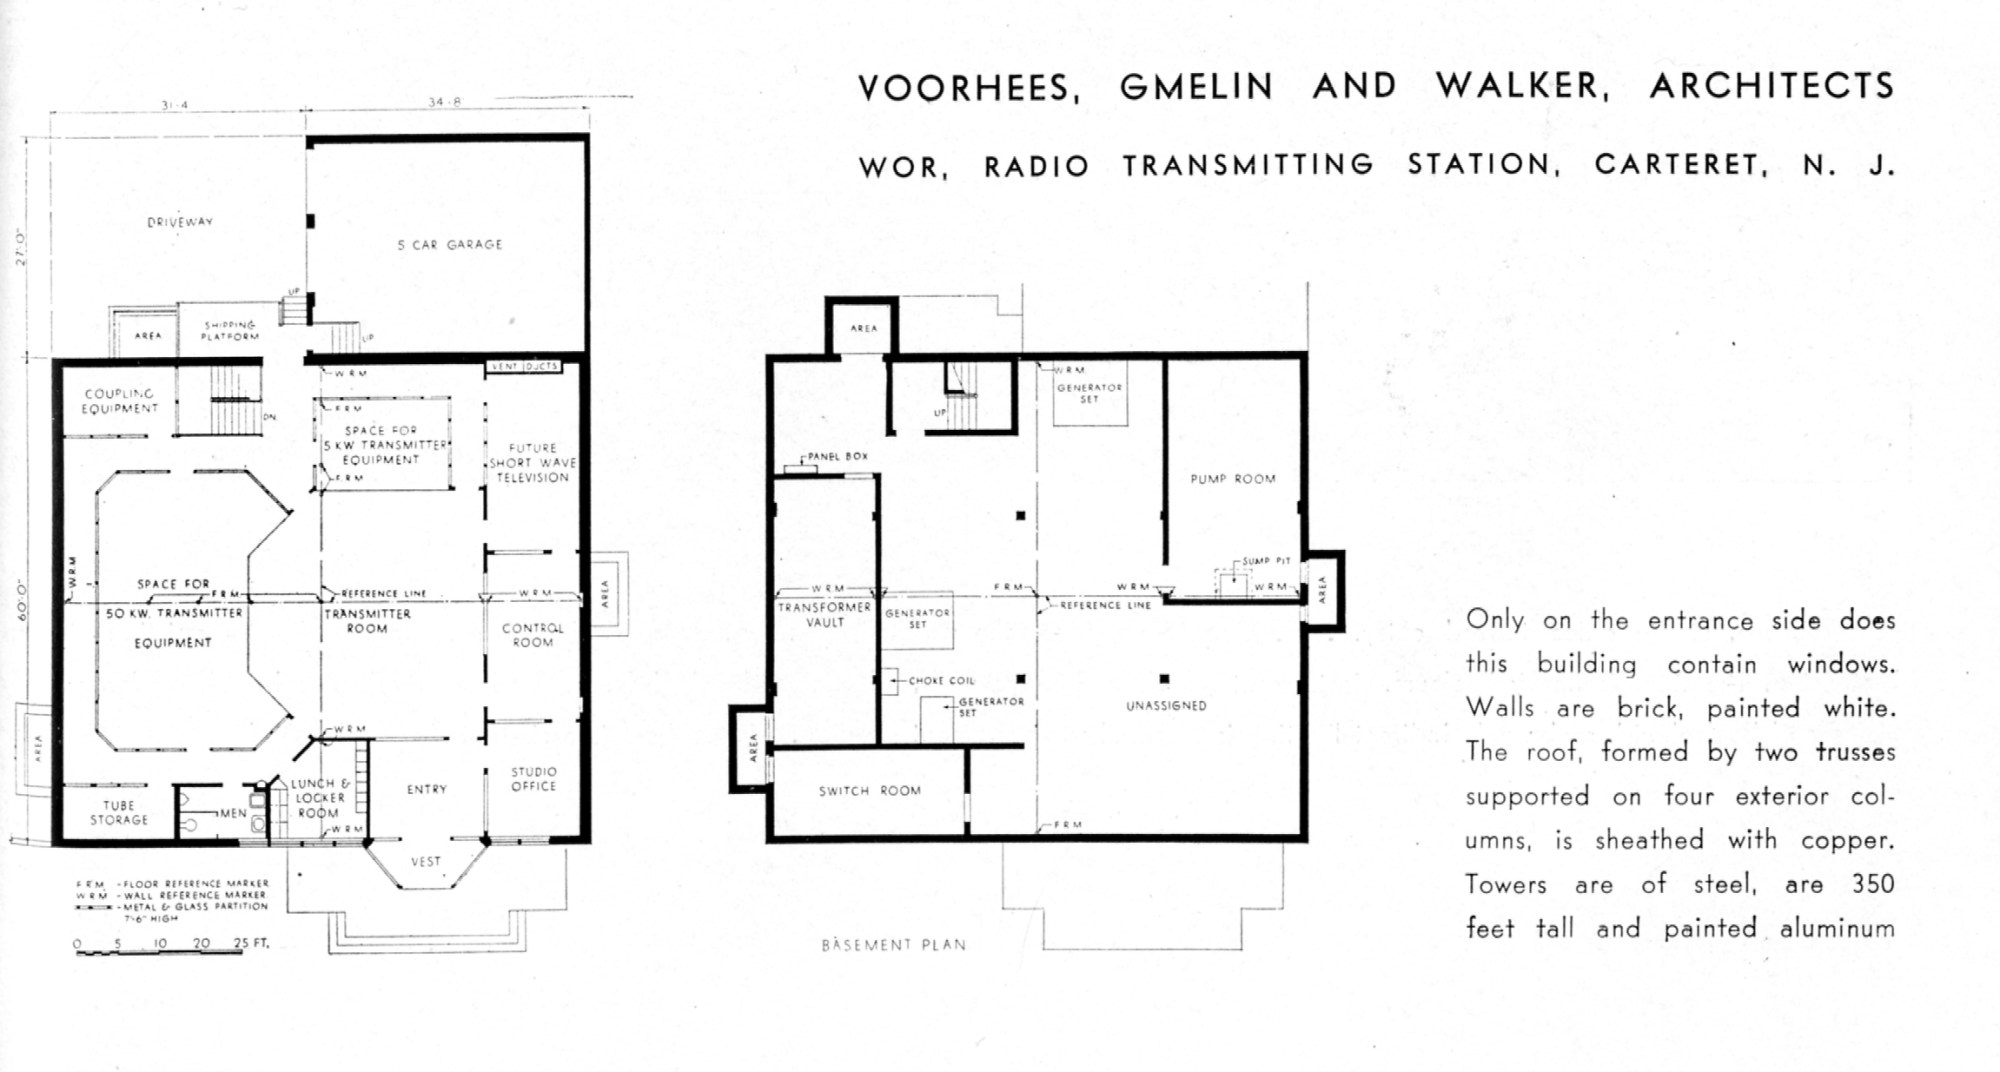 hight resolution of fig 6 voorhees gmelin and walker wor radio transmitting station